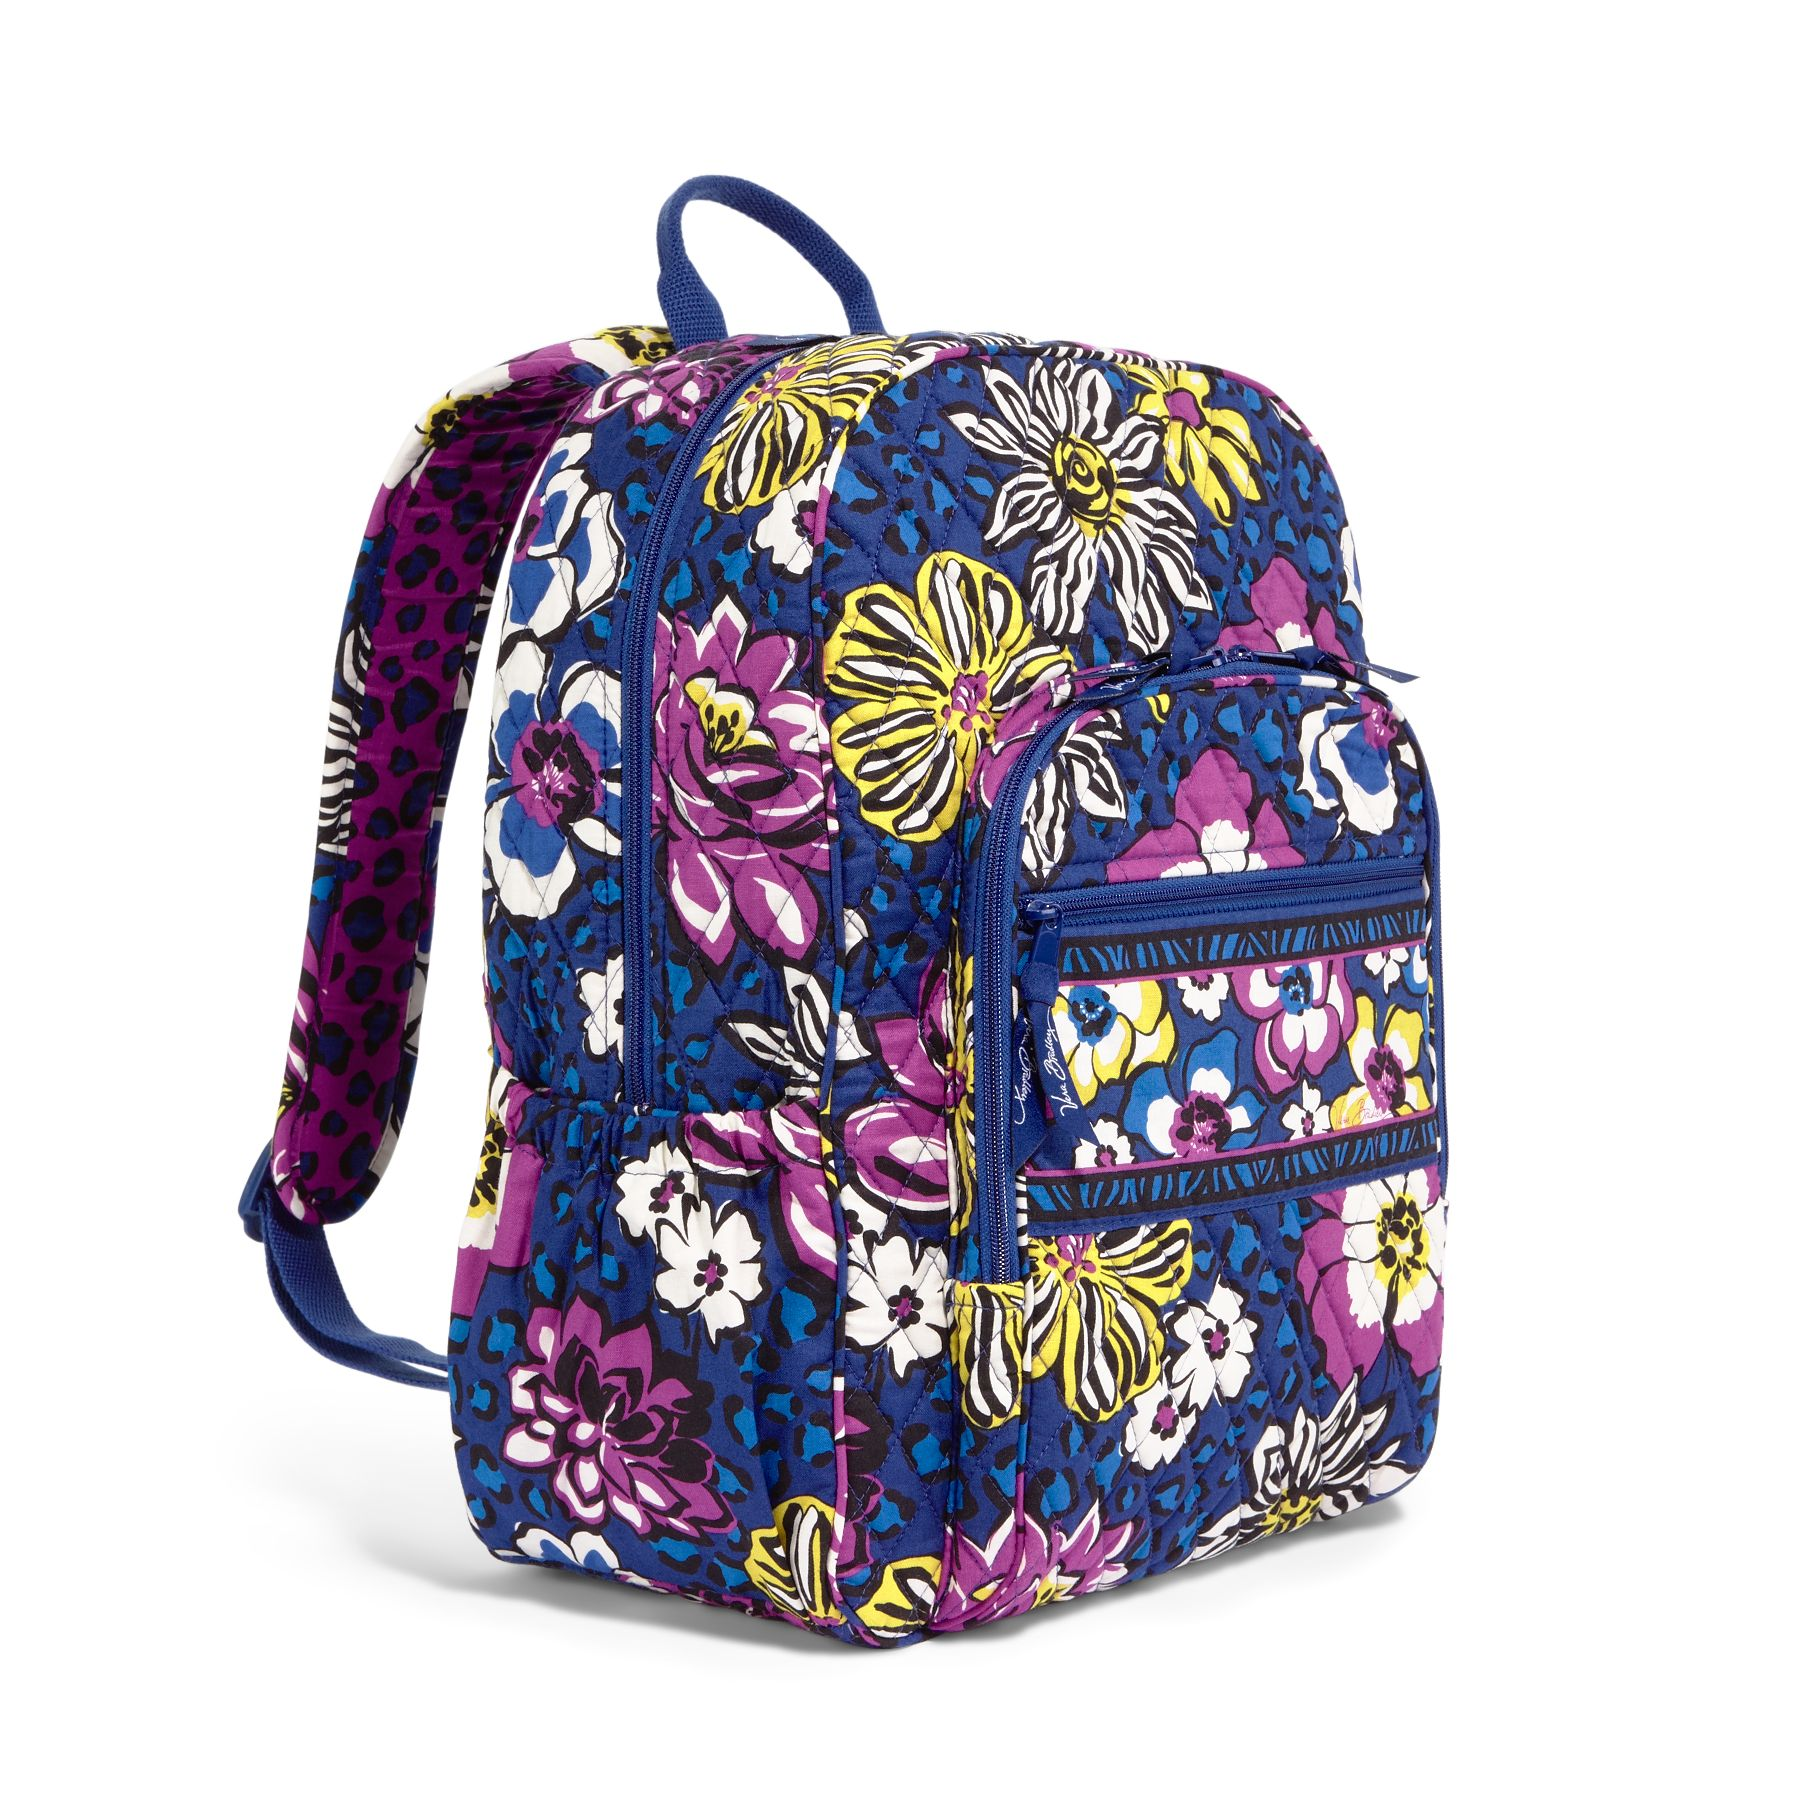 7 hours ago · If you're a fan of Vera Bradley, don't miss out on this outlet sale! Save big when you take an extra 40% off already reduced items! If you're a fan of Vera Bradley, don't miss out on this outlet sale! Save big when you take an extra 40% off already reduced items! Campus Tech Backpack $65 (regularly $) 40% off discount.